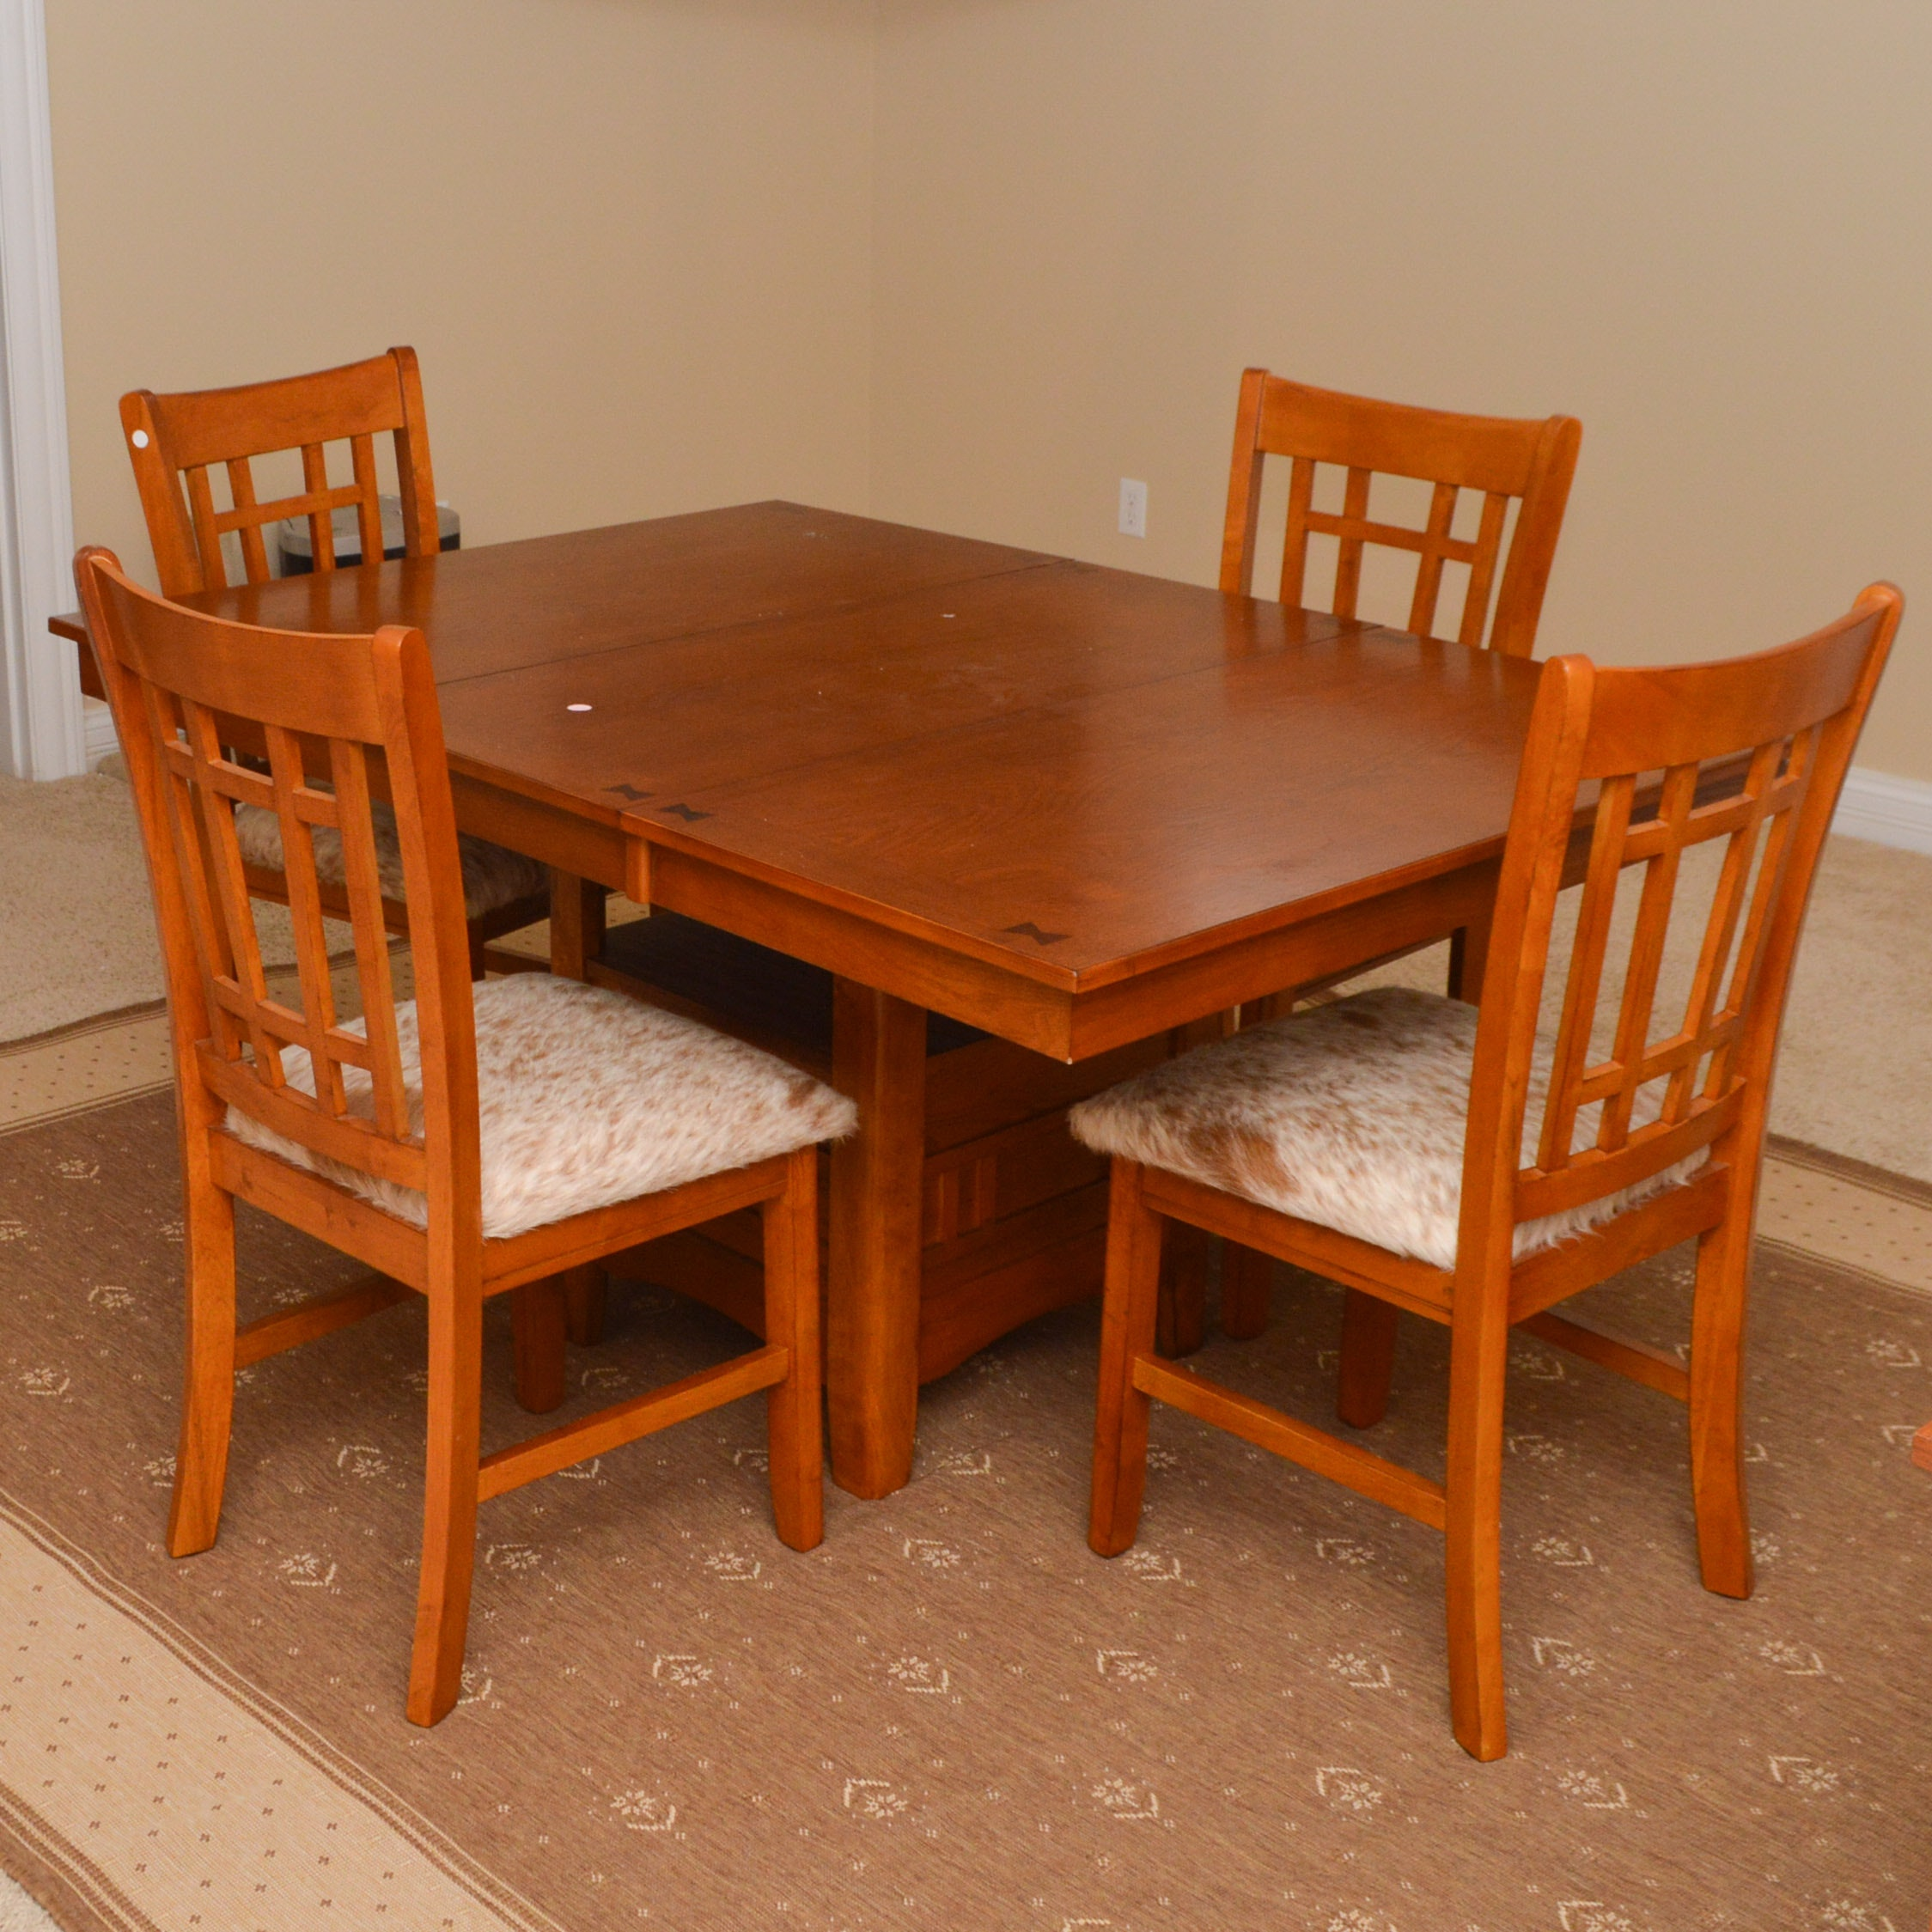 Mission Style Oak Table and Chairs